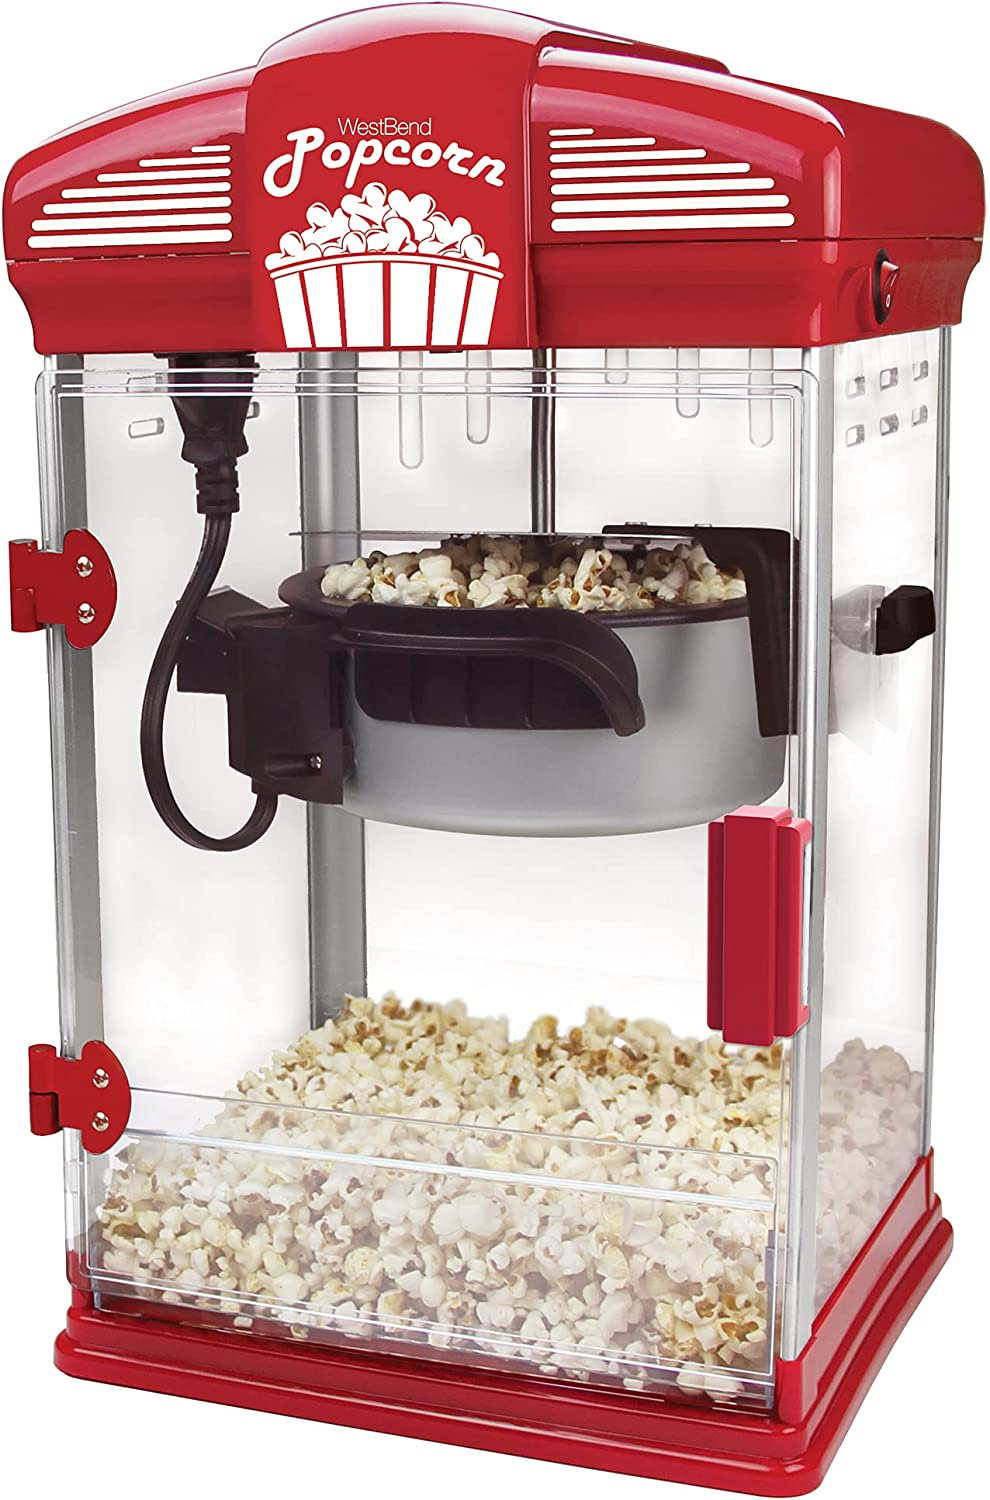 West Bend Hot Oil Theater Style Popcorn Popper Machine with Nonstick Kettle Includes Measuring Tool and Serving Scoop, 4-Ounce, Red